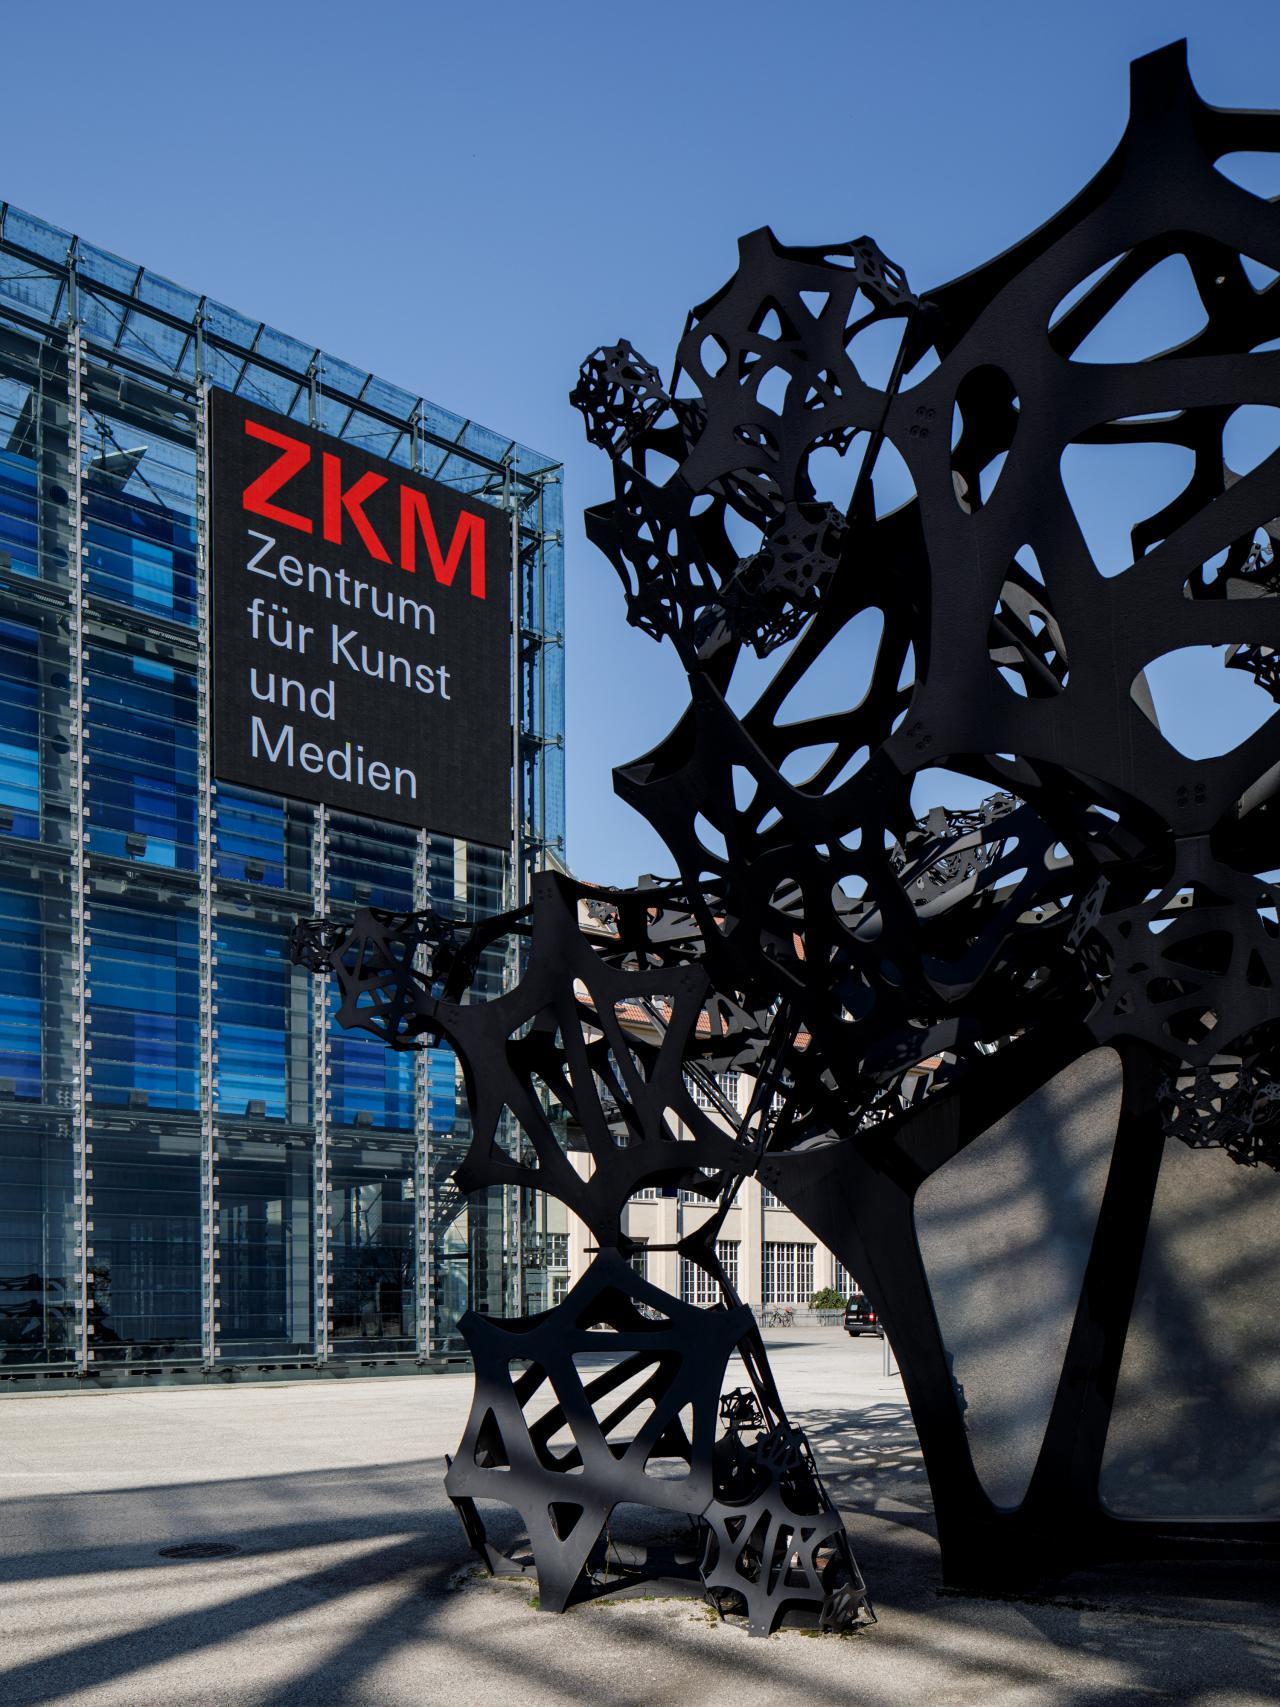 On the left is a part of the ZKM Cube with a video wall, on the right the squiggly architecture of the Sound Pavilion The Morning Line protrudes into the picture.